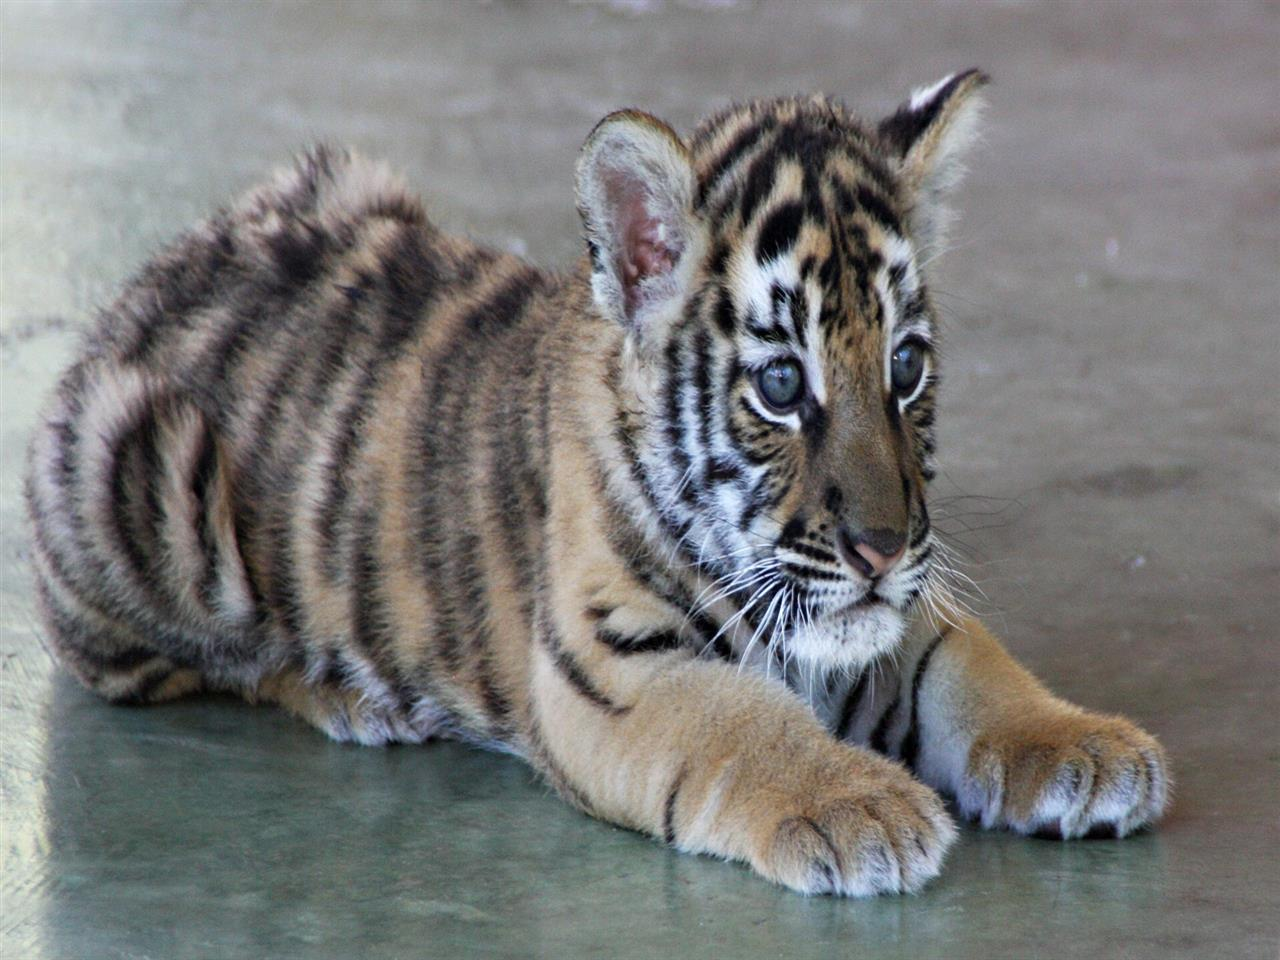 1280x960 Cute Tiger Cub High Quality Photo